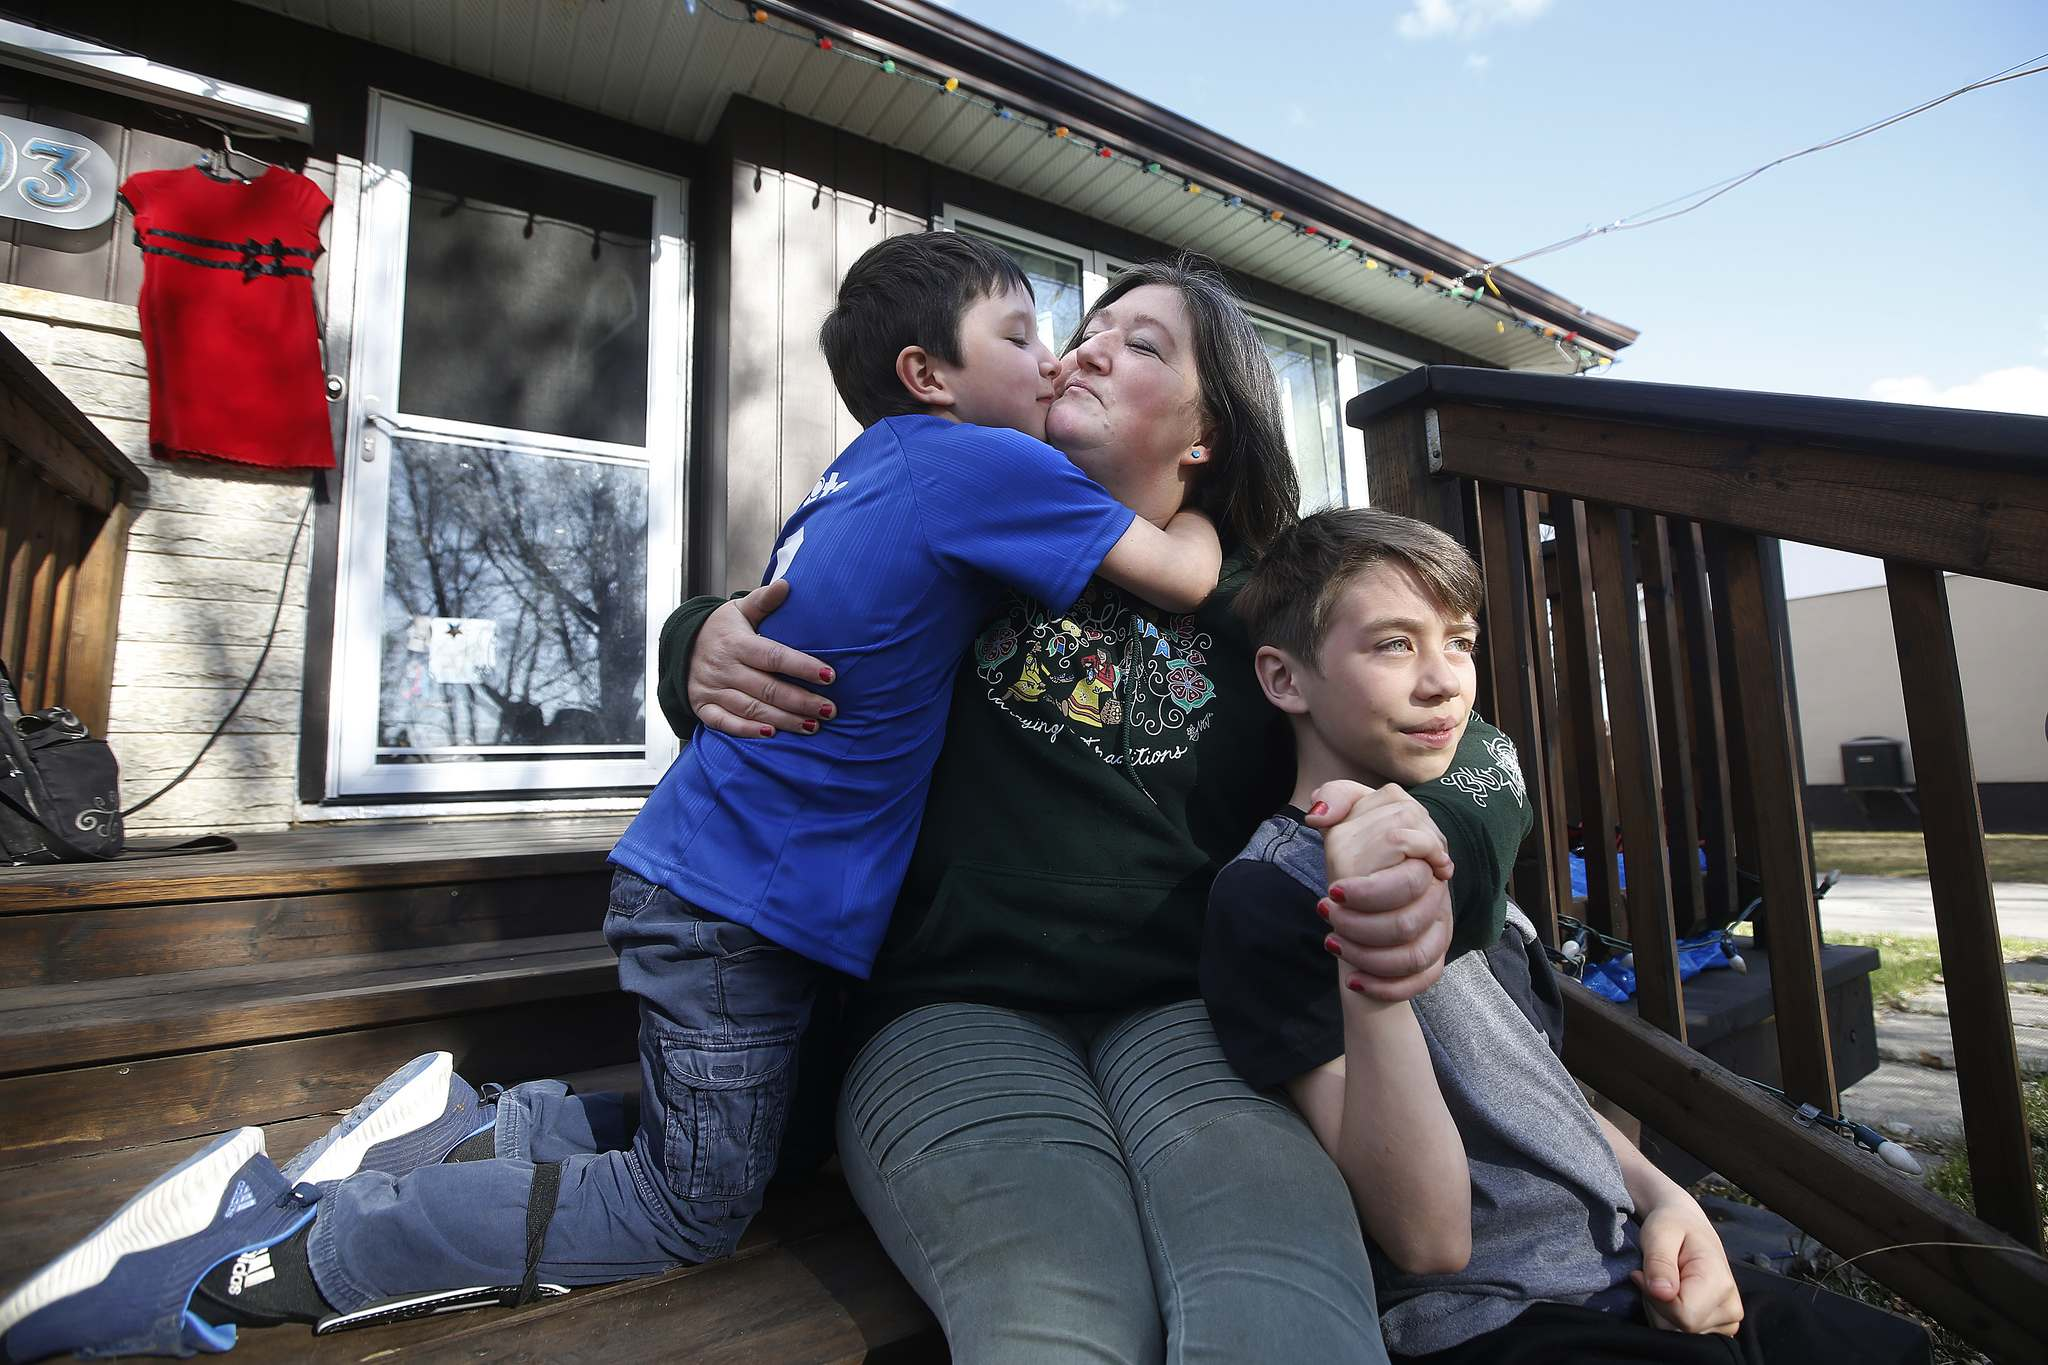 Kisa MacIsaac spends time with her sons Kalvin, left, and Oren before Kalvin's soccer game.</p></p>